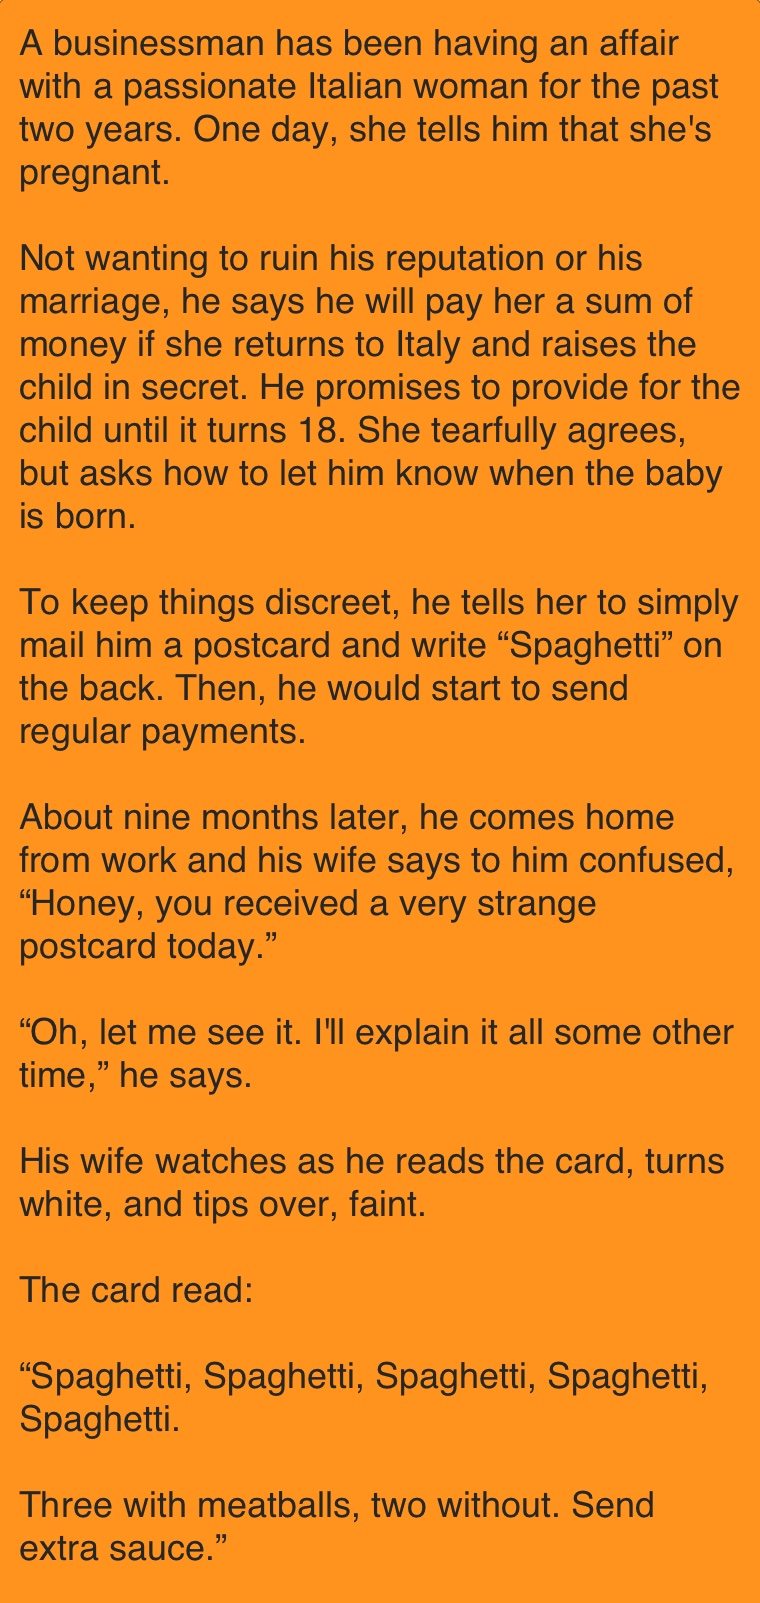 He decided to part with his pregnant mistress. And after 9 months I received a postcard